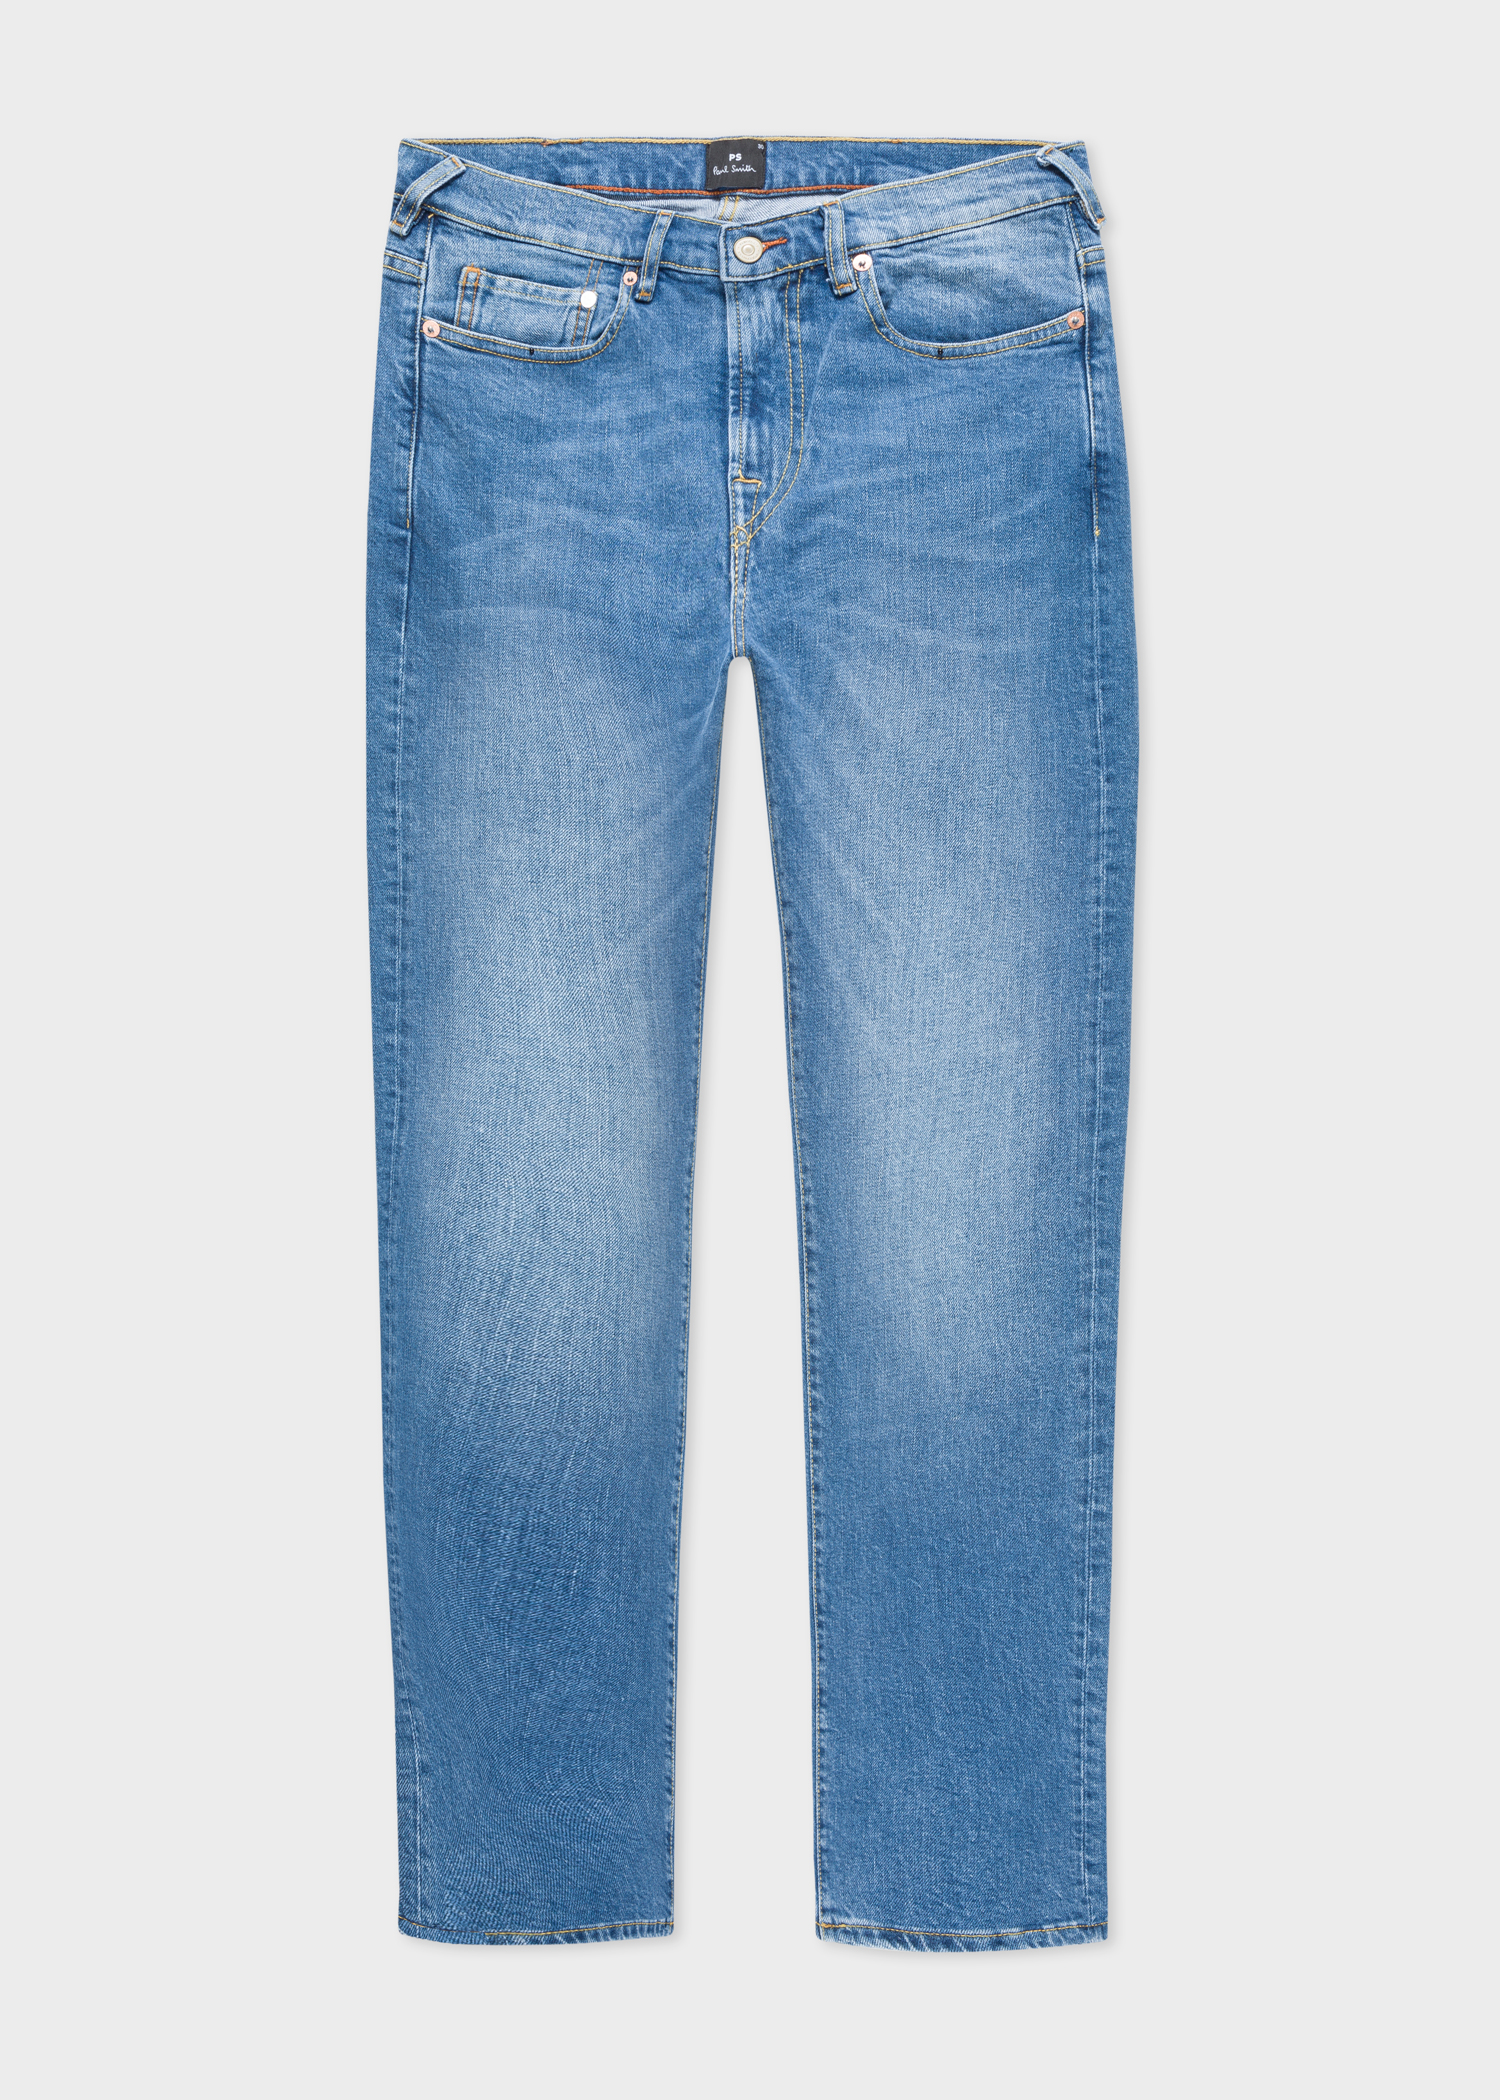 Coupe Jean Homme Jean Homme Délavé Vintage En Denim Stretch Coupe Slim